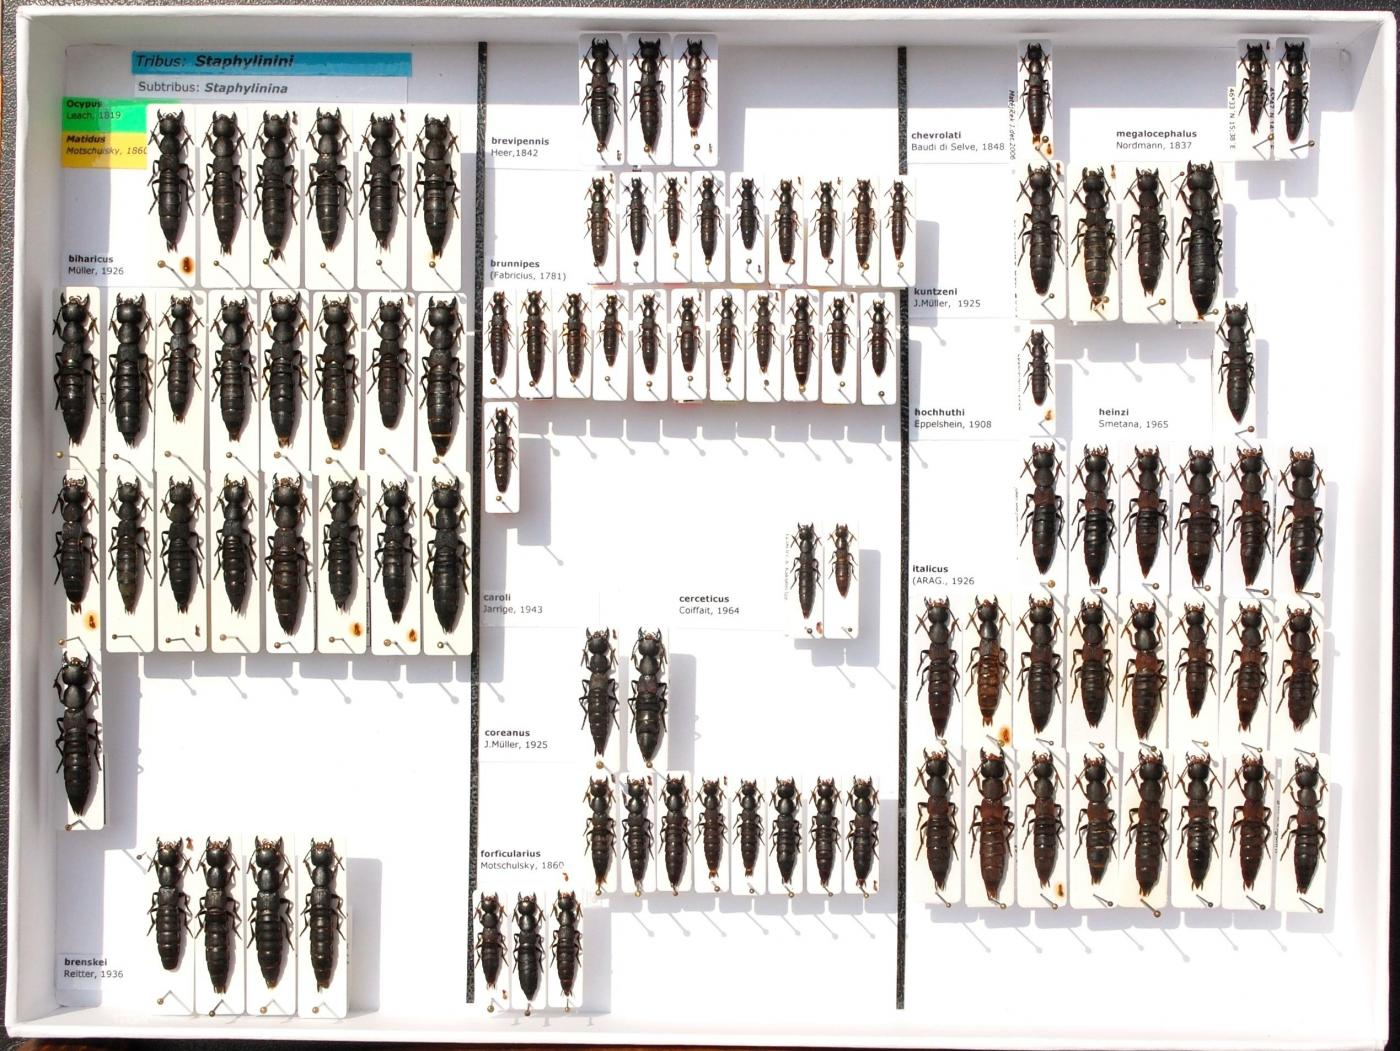 Staphylinidae_55.JPG - Attached Image (Click thumbnail to expand)